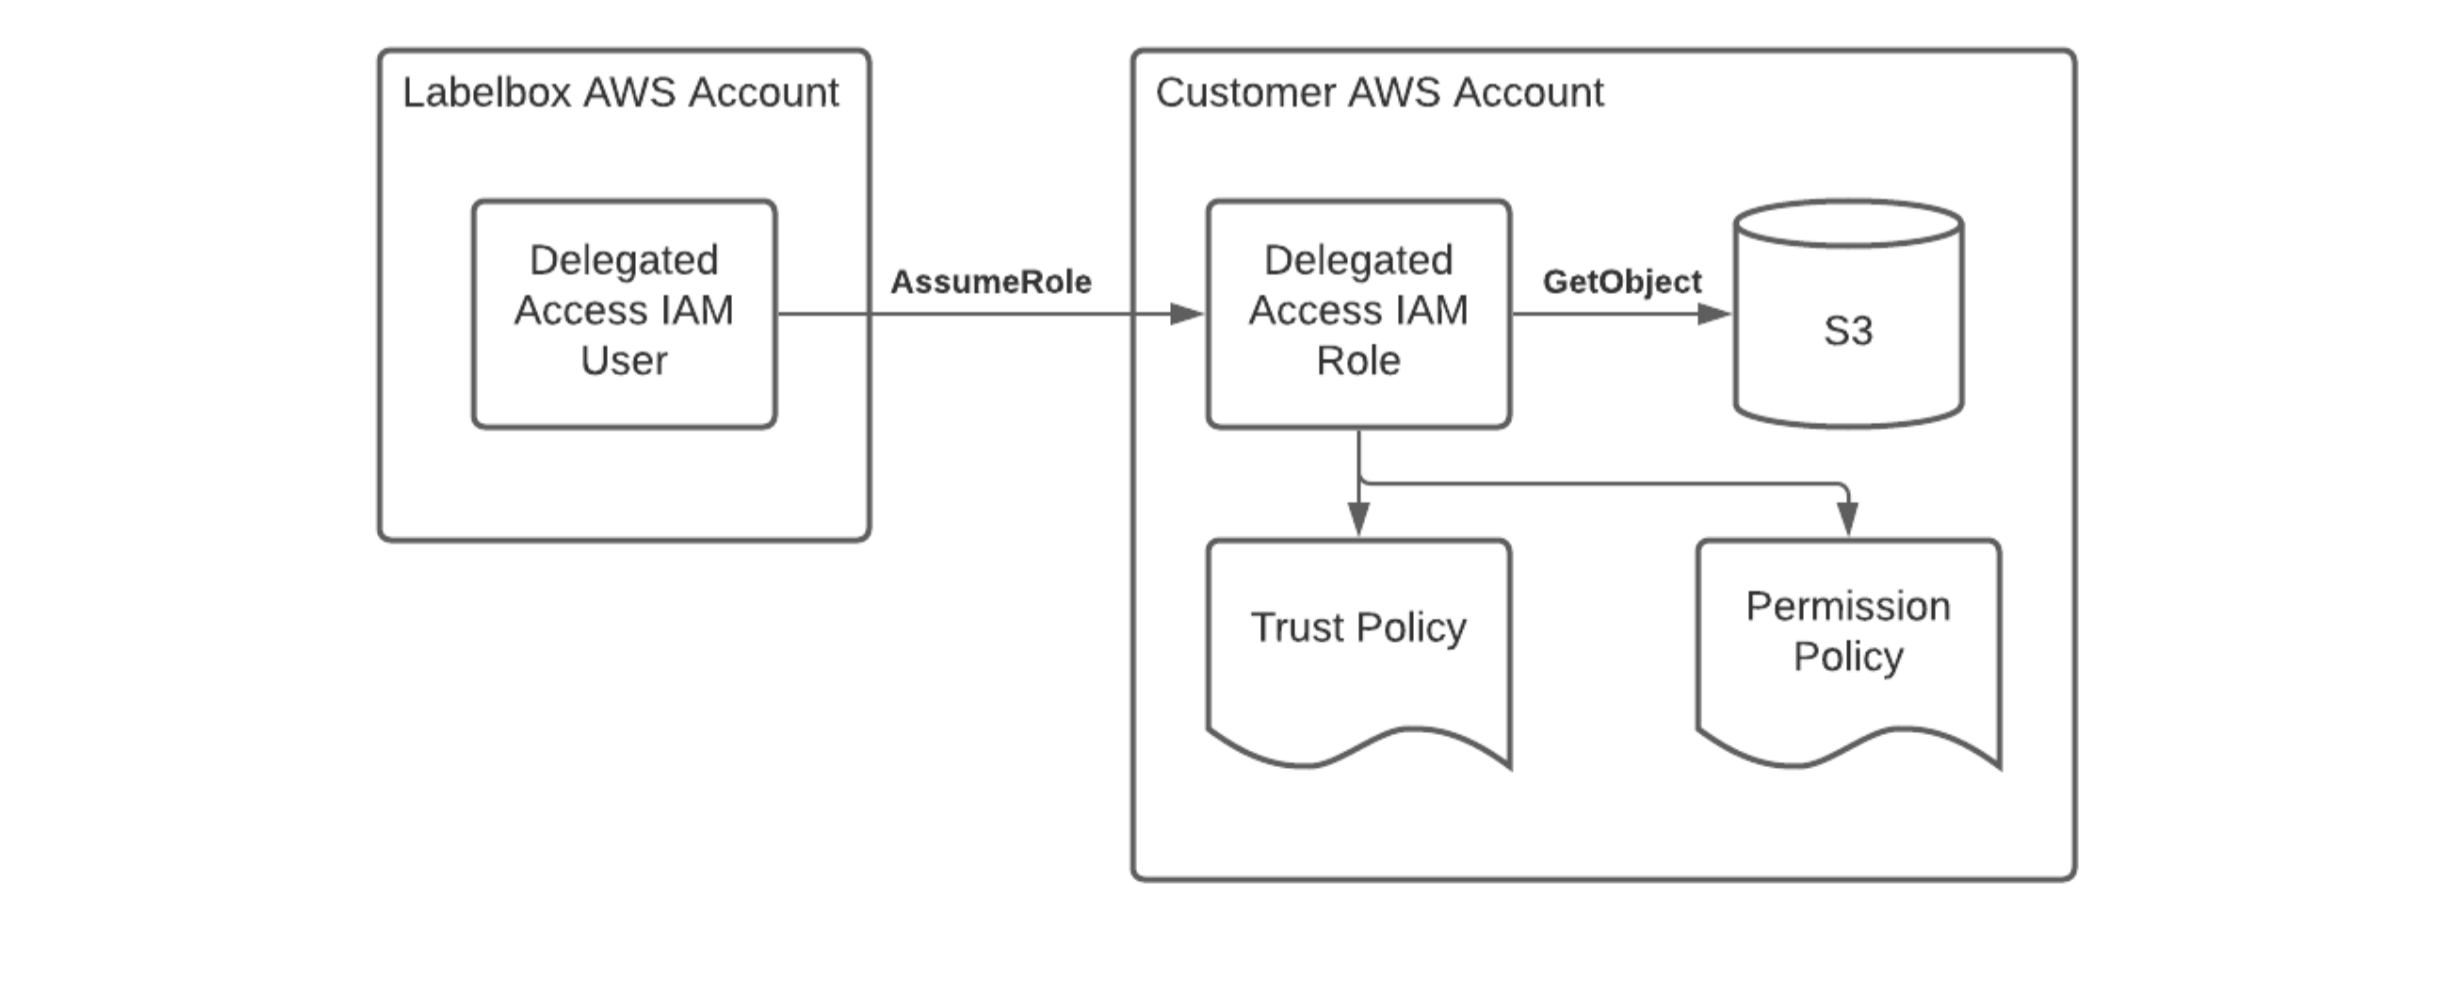 Delegated Access setup in AWS (similar in GCP)